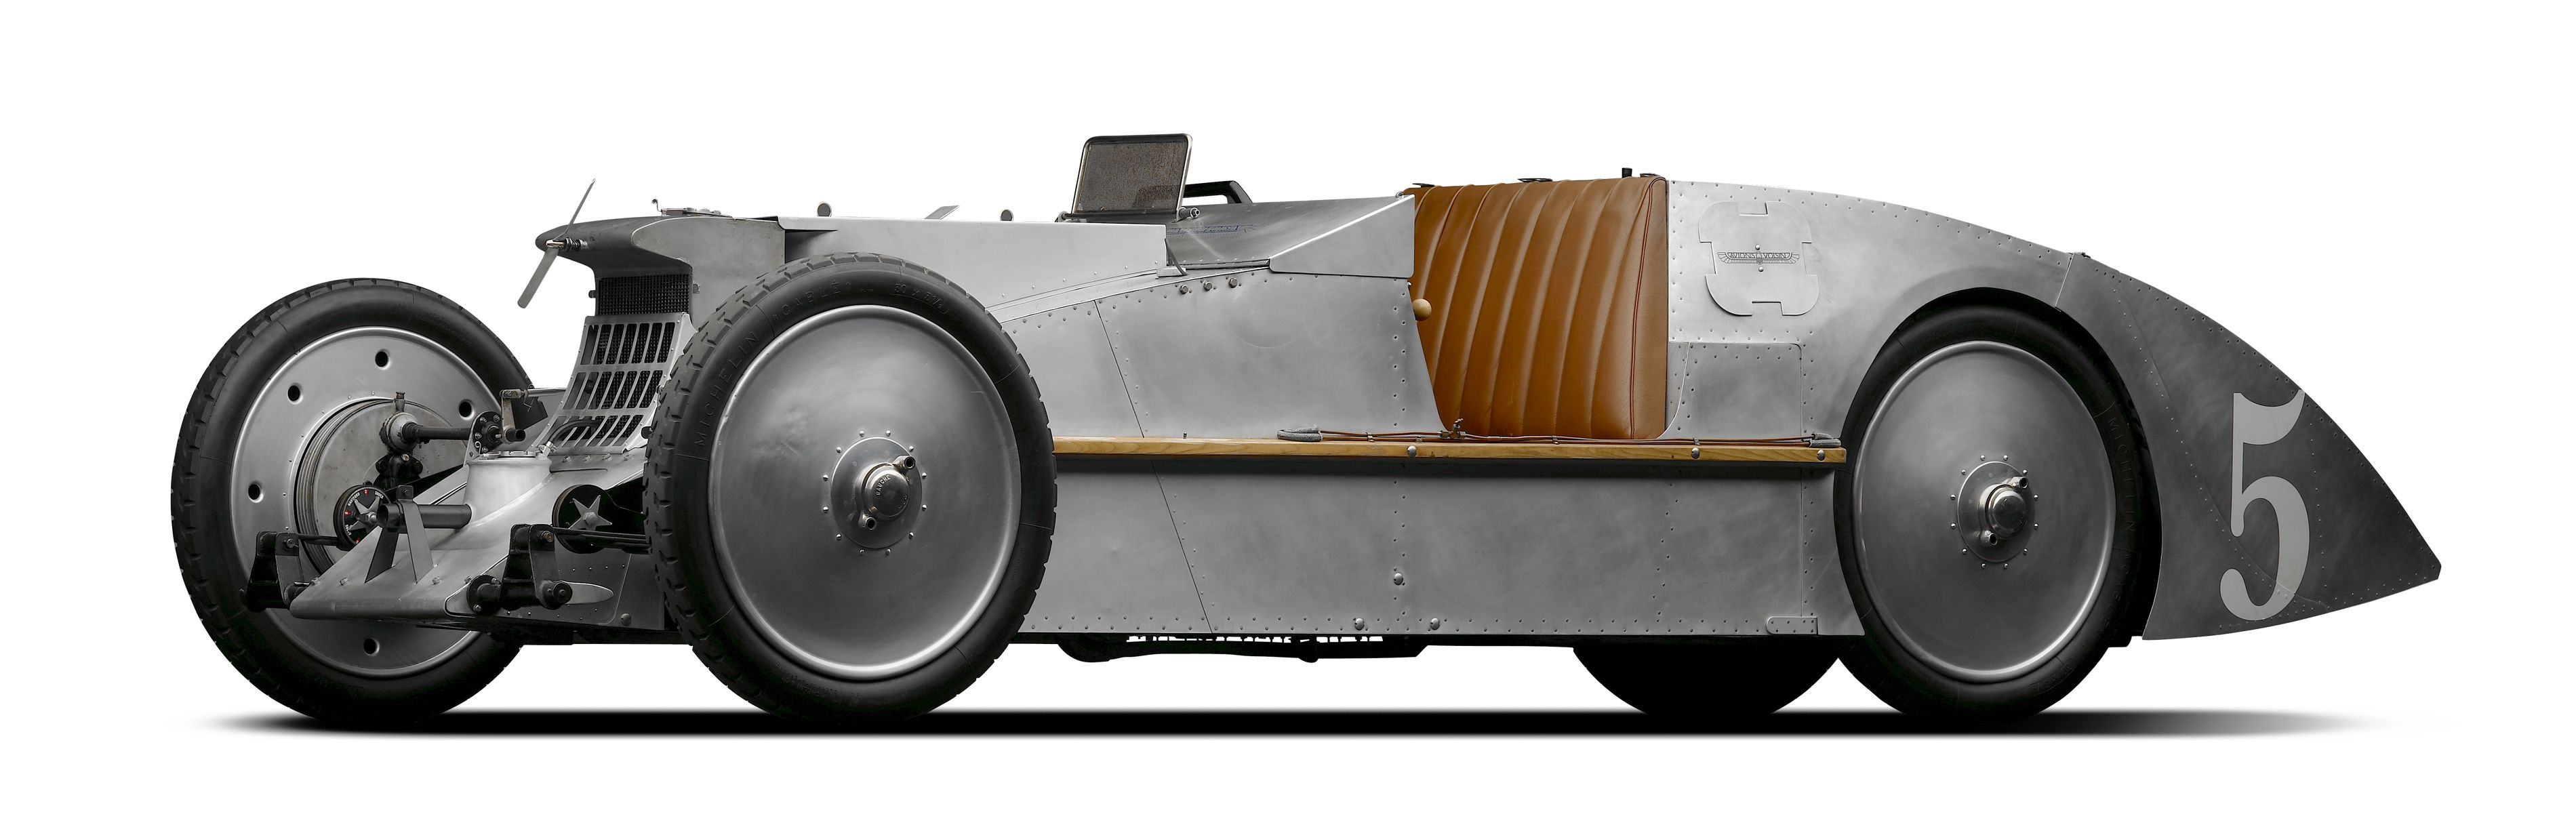 Voisin's C6 Laboratoire was an imaginative approach to creation of a Grand Prix car utilizing Voisin's knowledge of aircraft design. (Picture courtesy auto100.com).